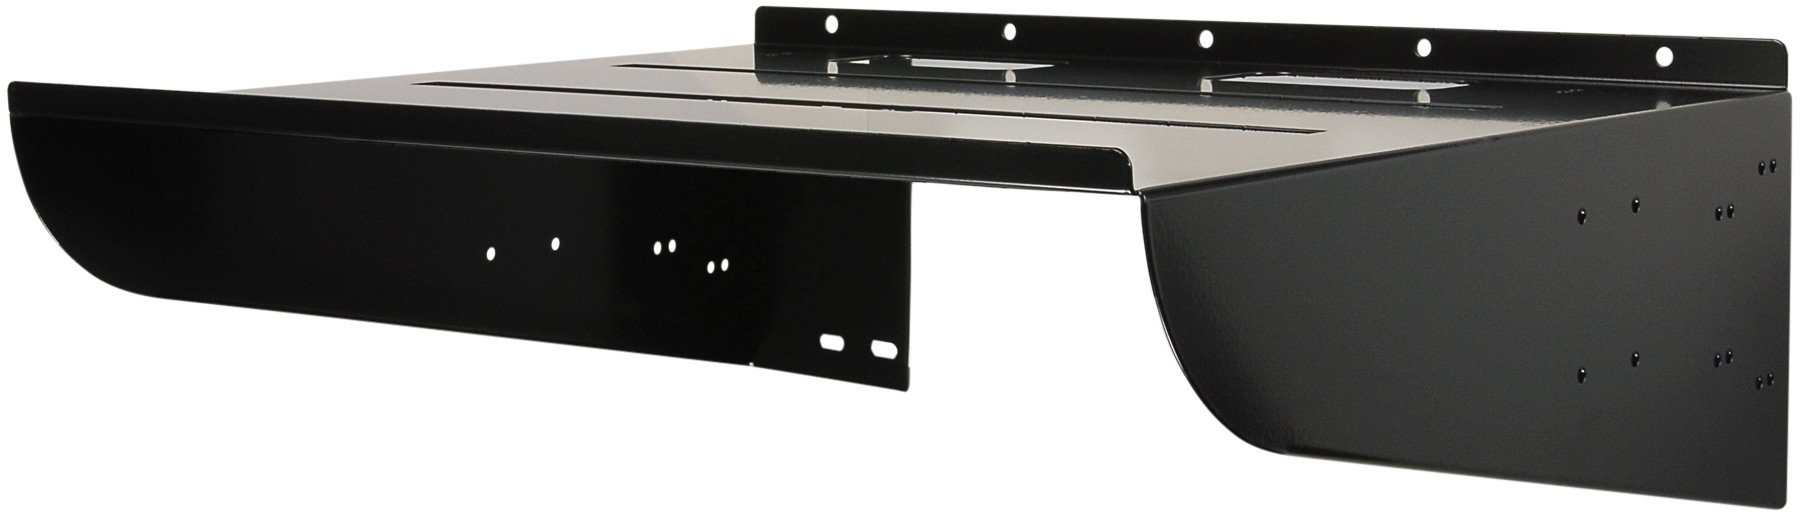 "20"" x 16"" Steel Wall Mount Equipment Shelf in Black"